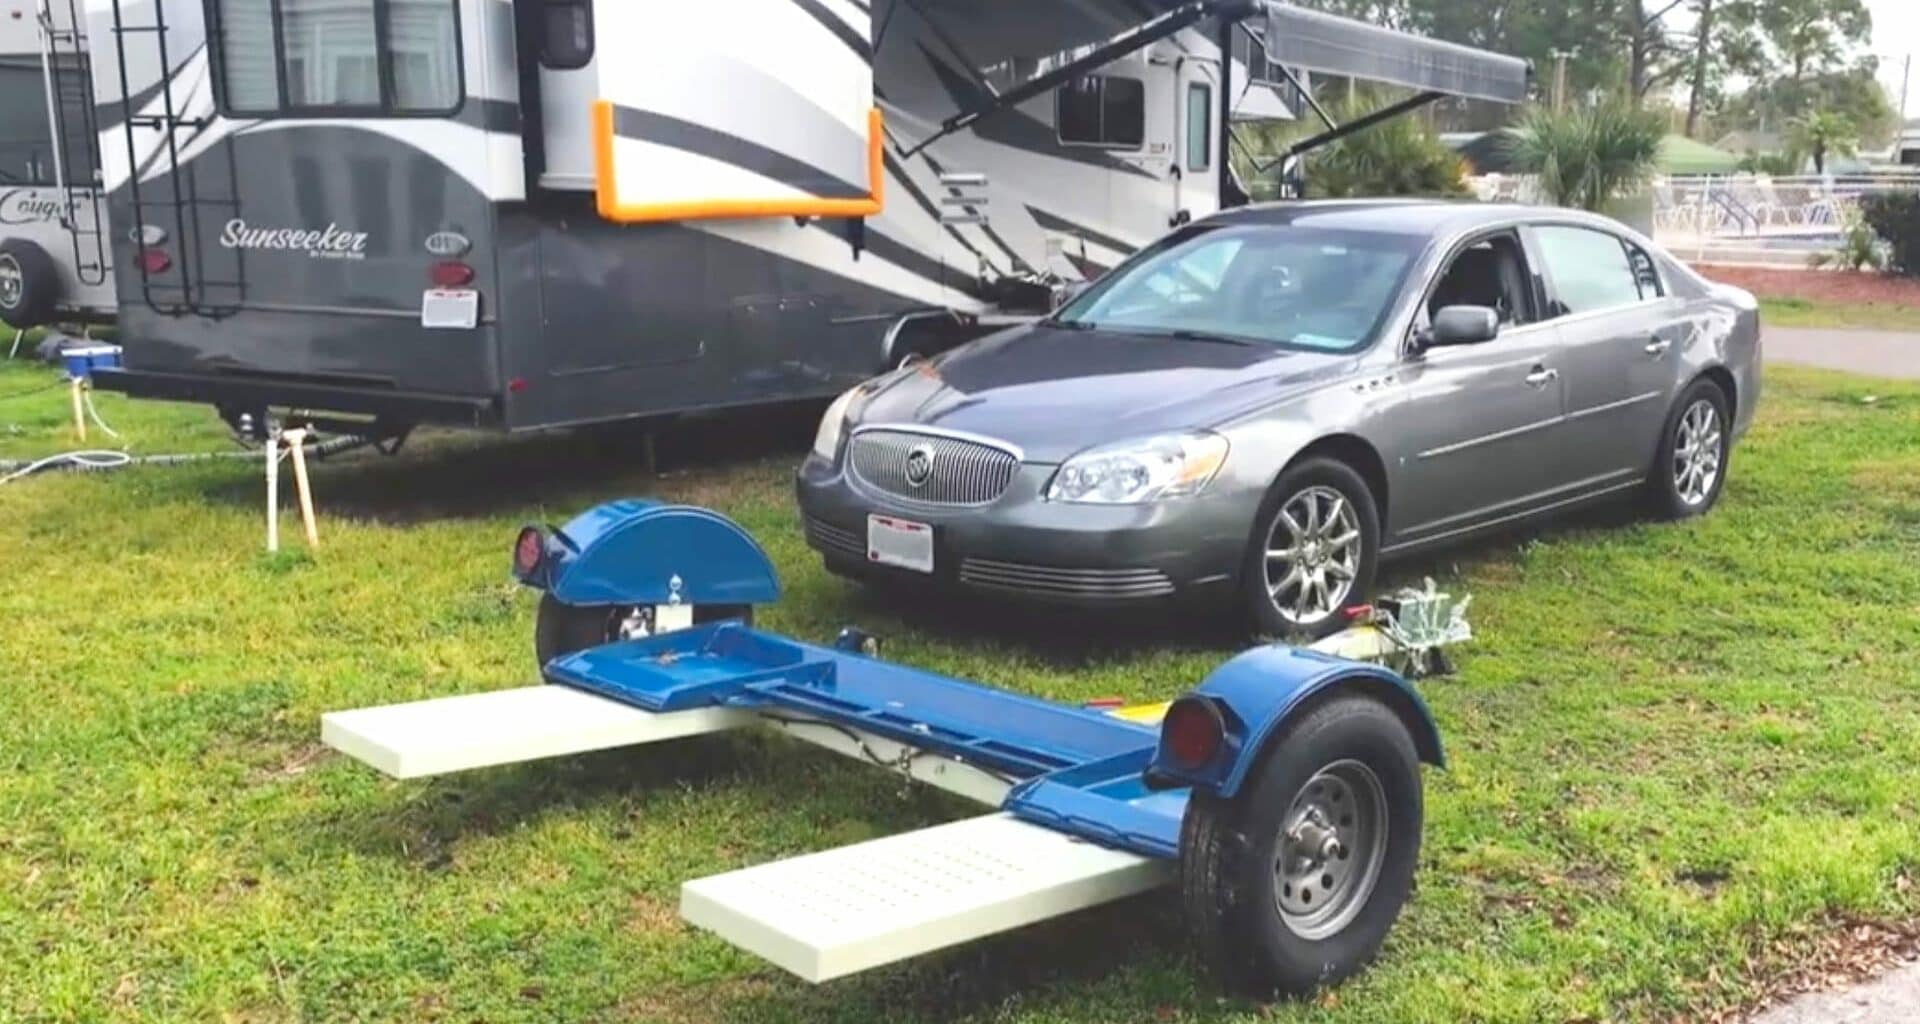 RV Tow Dolly, Front-Wheel-Drive Tow Car, and RV parked in RV Site